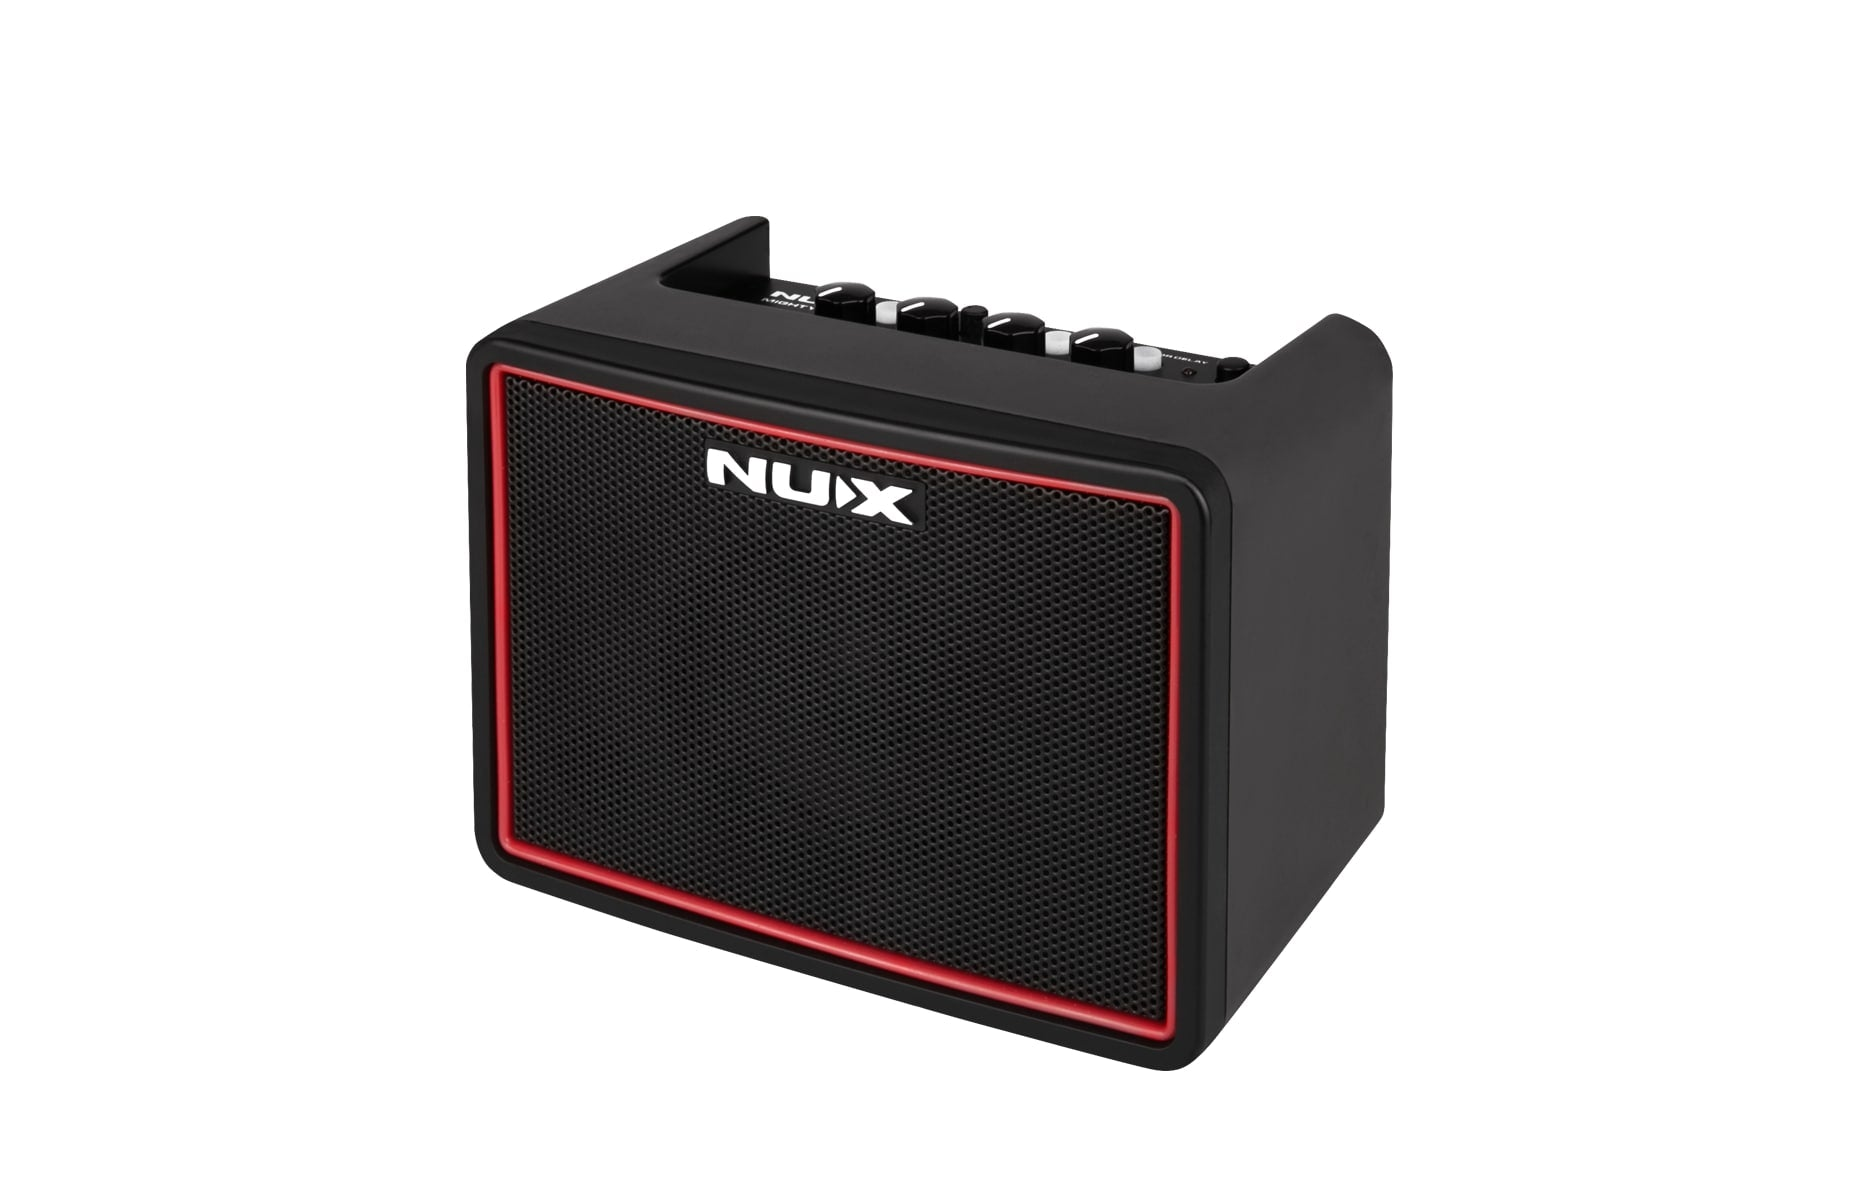 NUX MIGHTYLITEBT Desktop Guitar Mini Modeling Amplifier